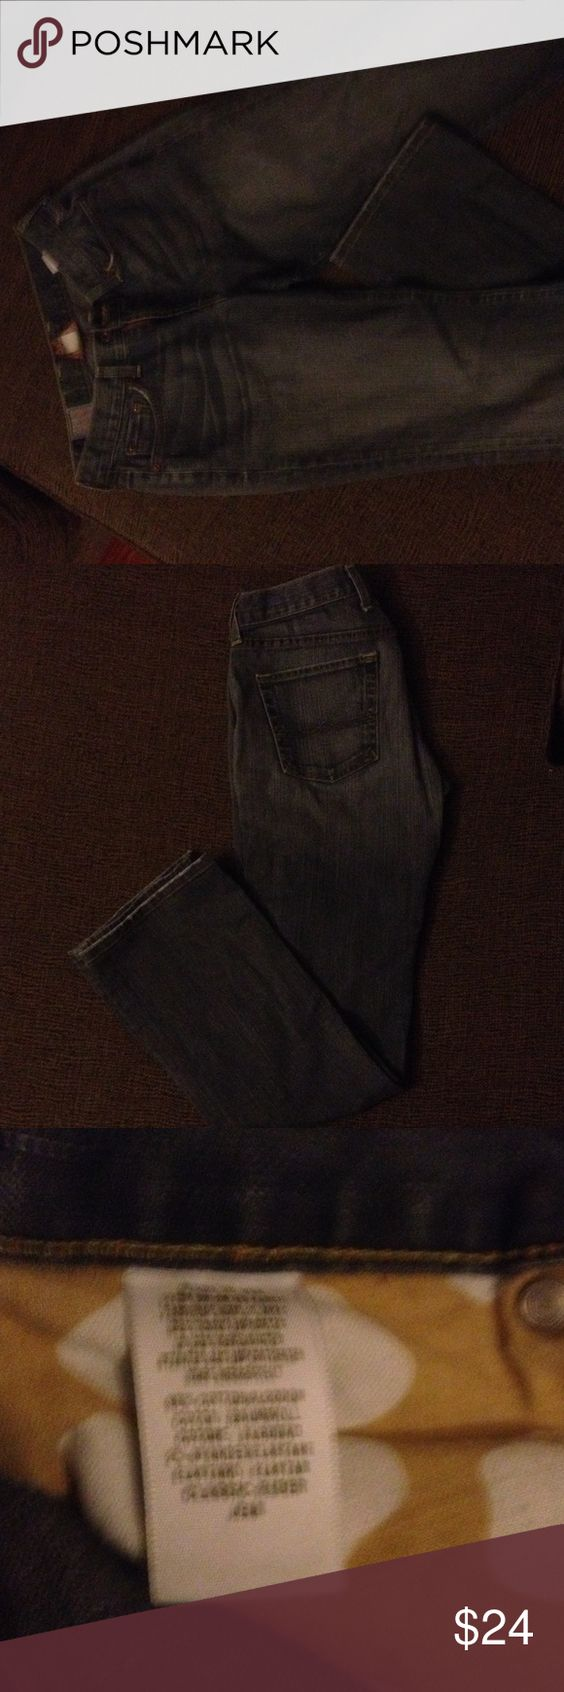 Lucky Classic Rider jeans. Never been worn. Brand new Lucky jeans w/o tags Lucky Brand Pants Straight Leg